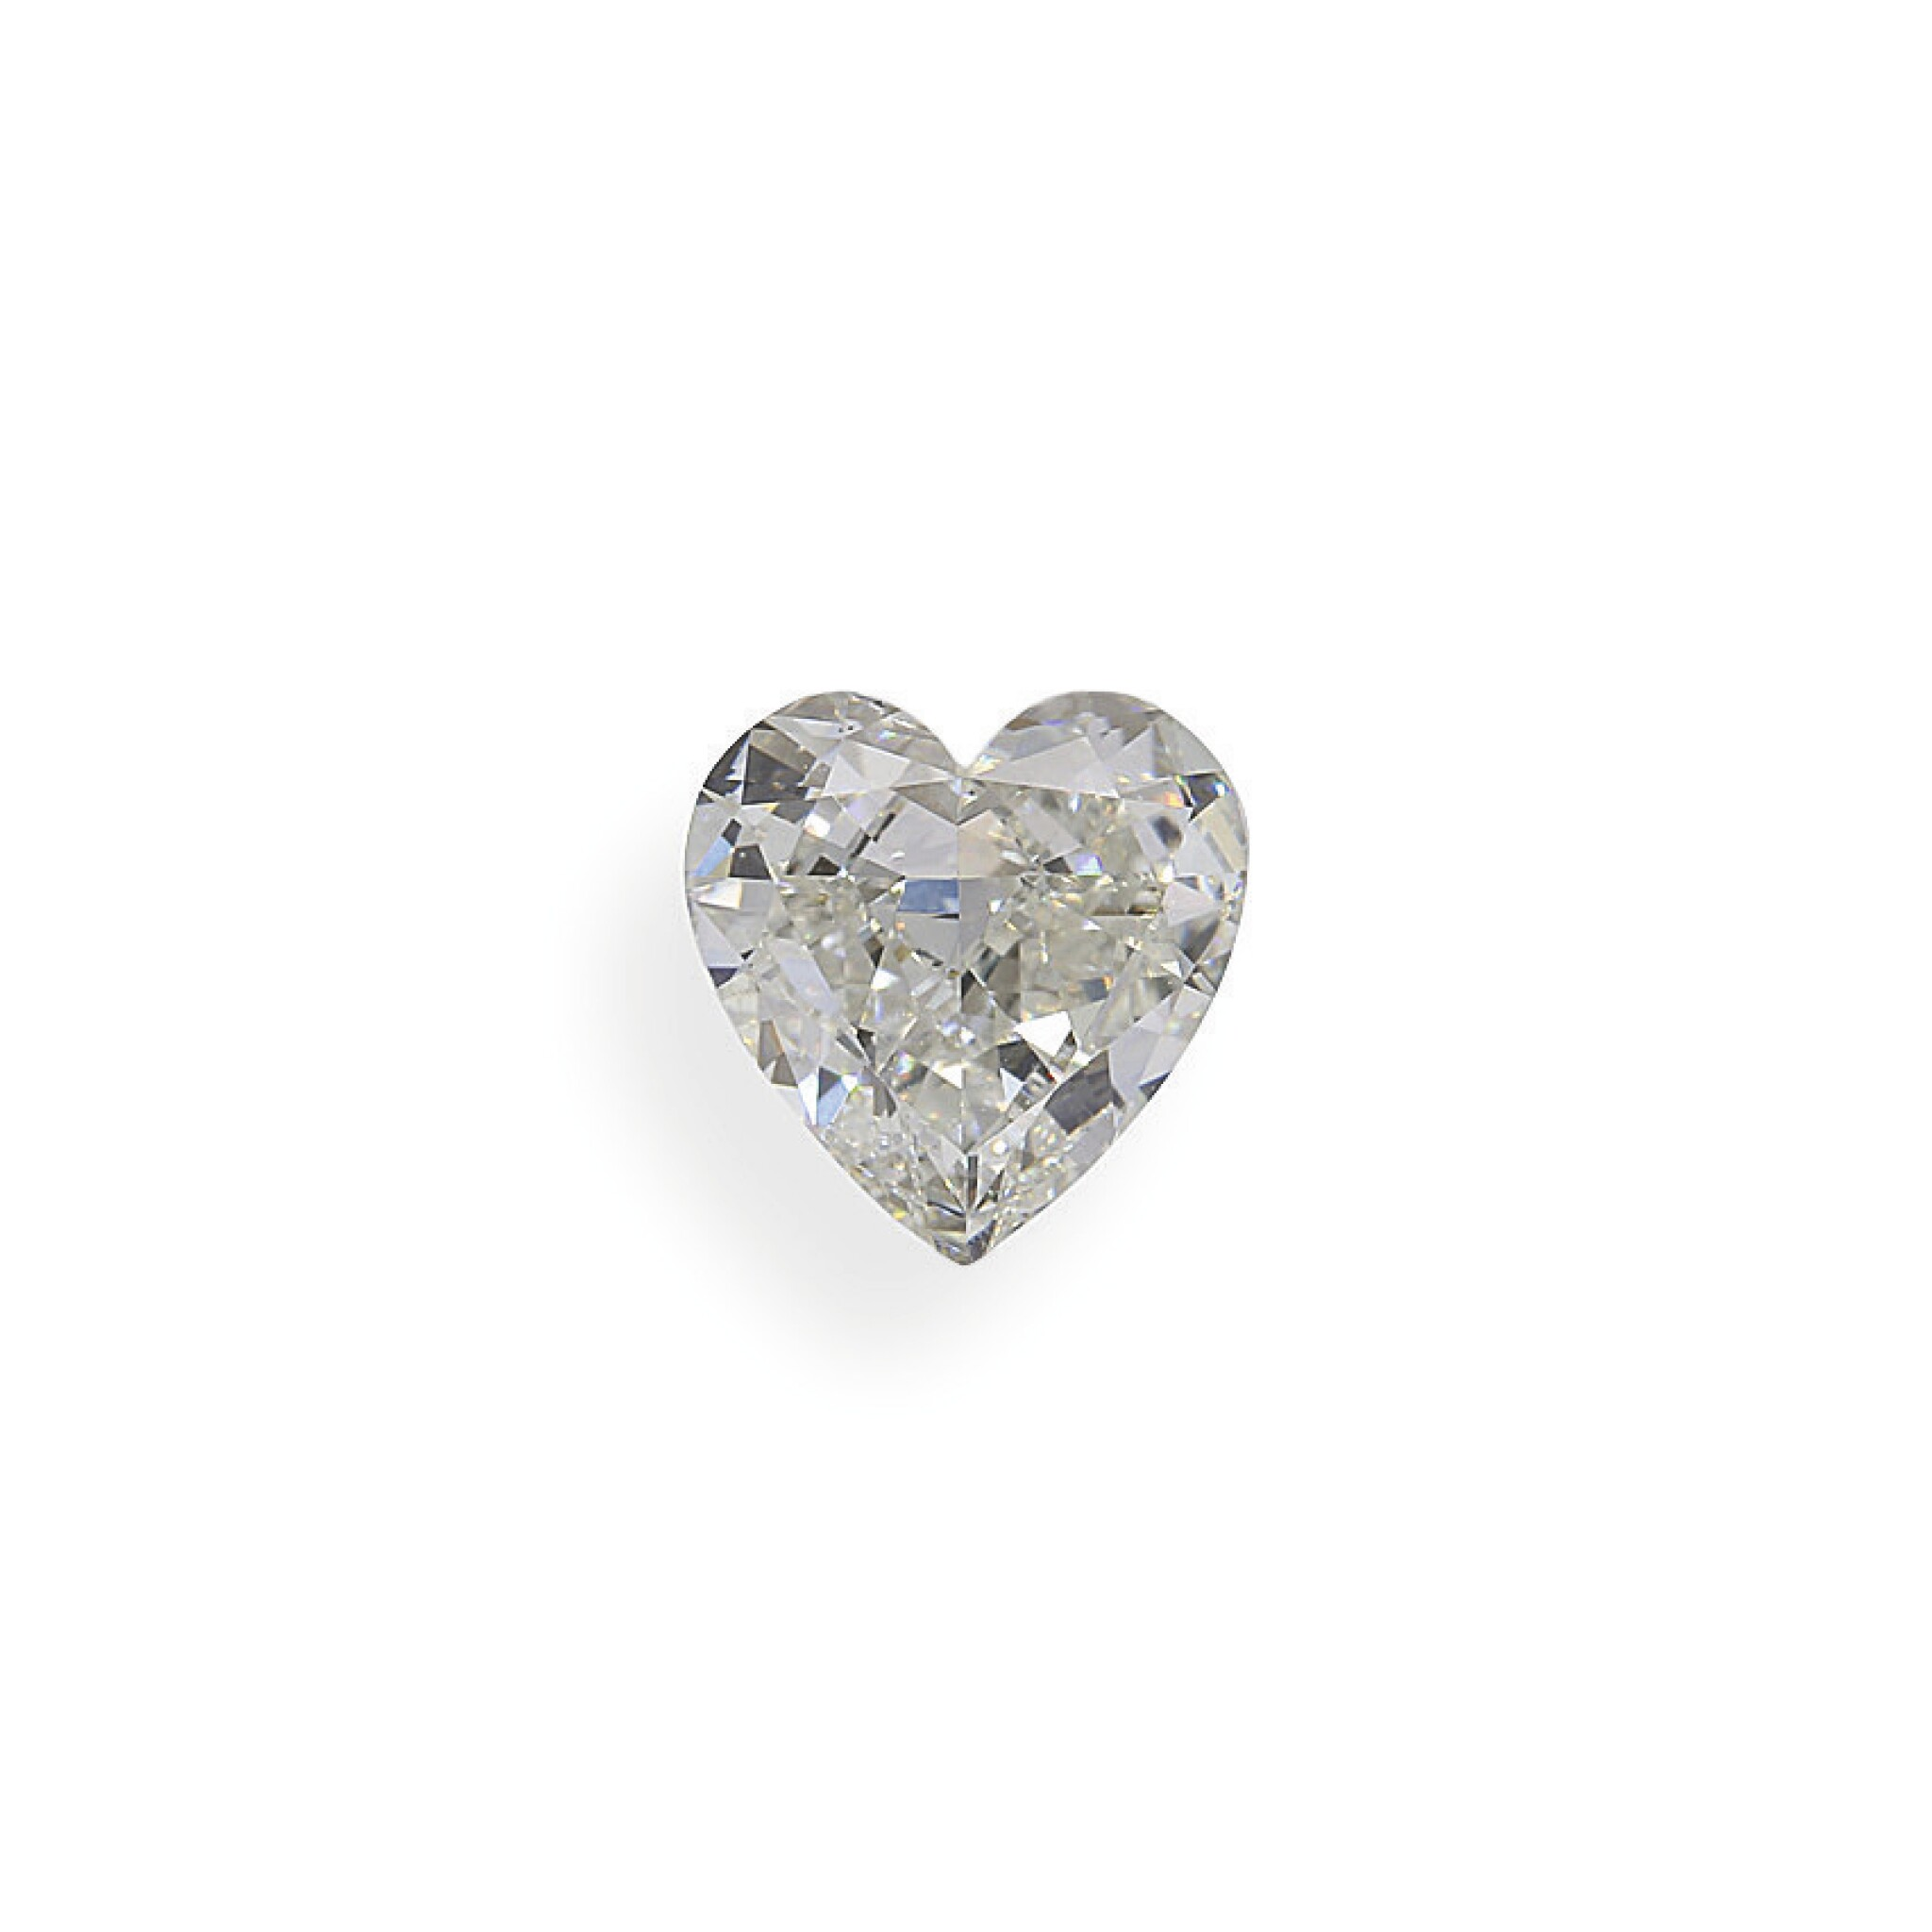 View full screen - View 1 of Lot 28. A 1.07 Carat Heart-Shaped Diamond, H Color, SI2 Clarity.